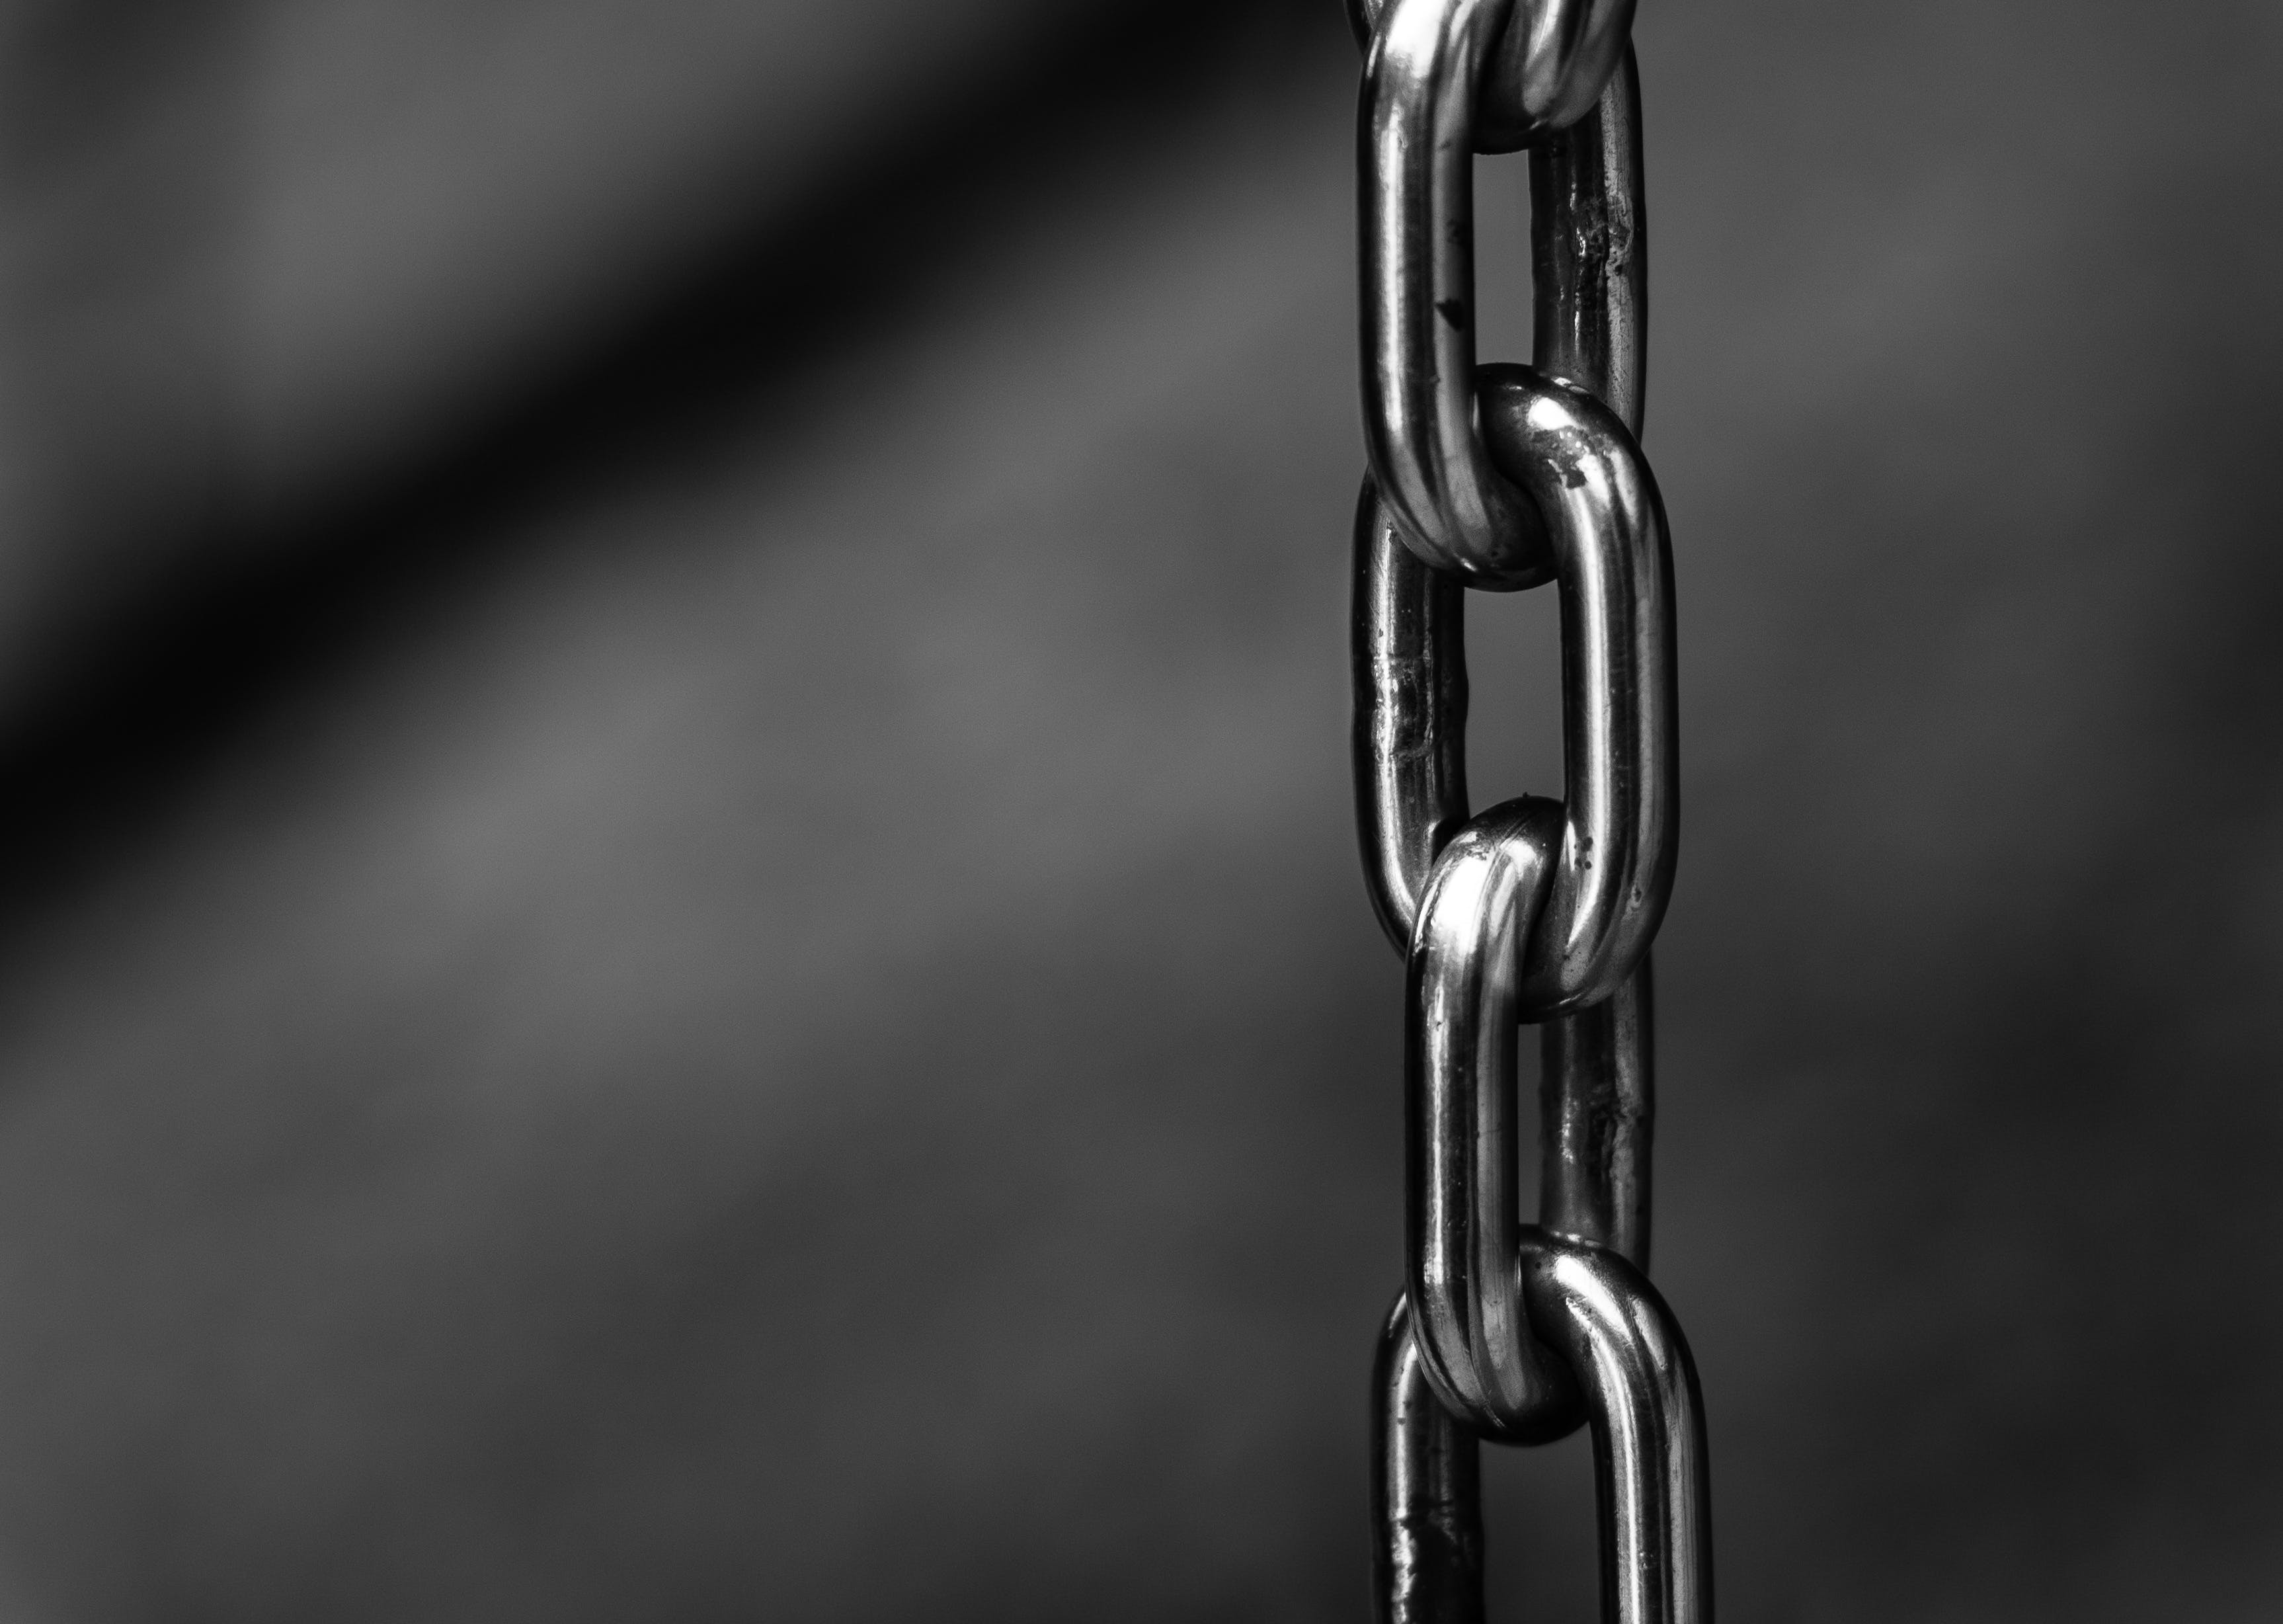 Grayscale Photography of Chain